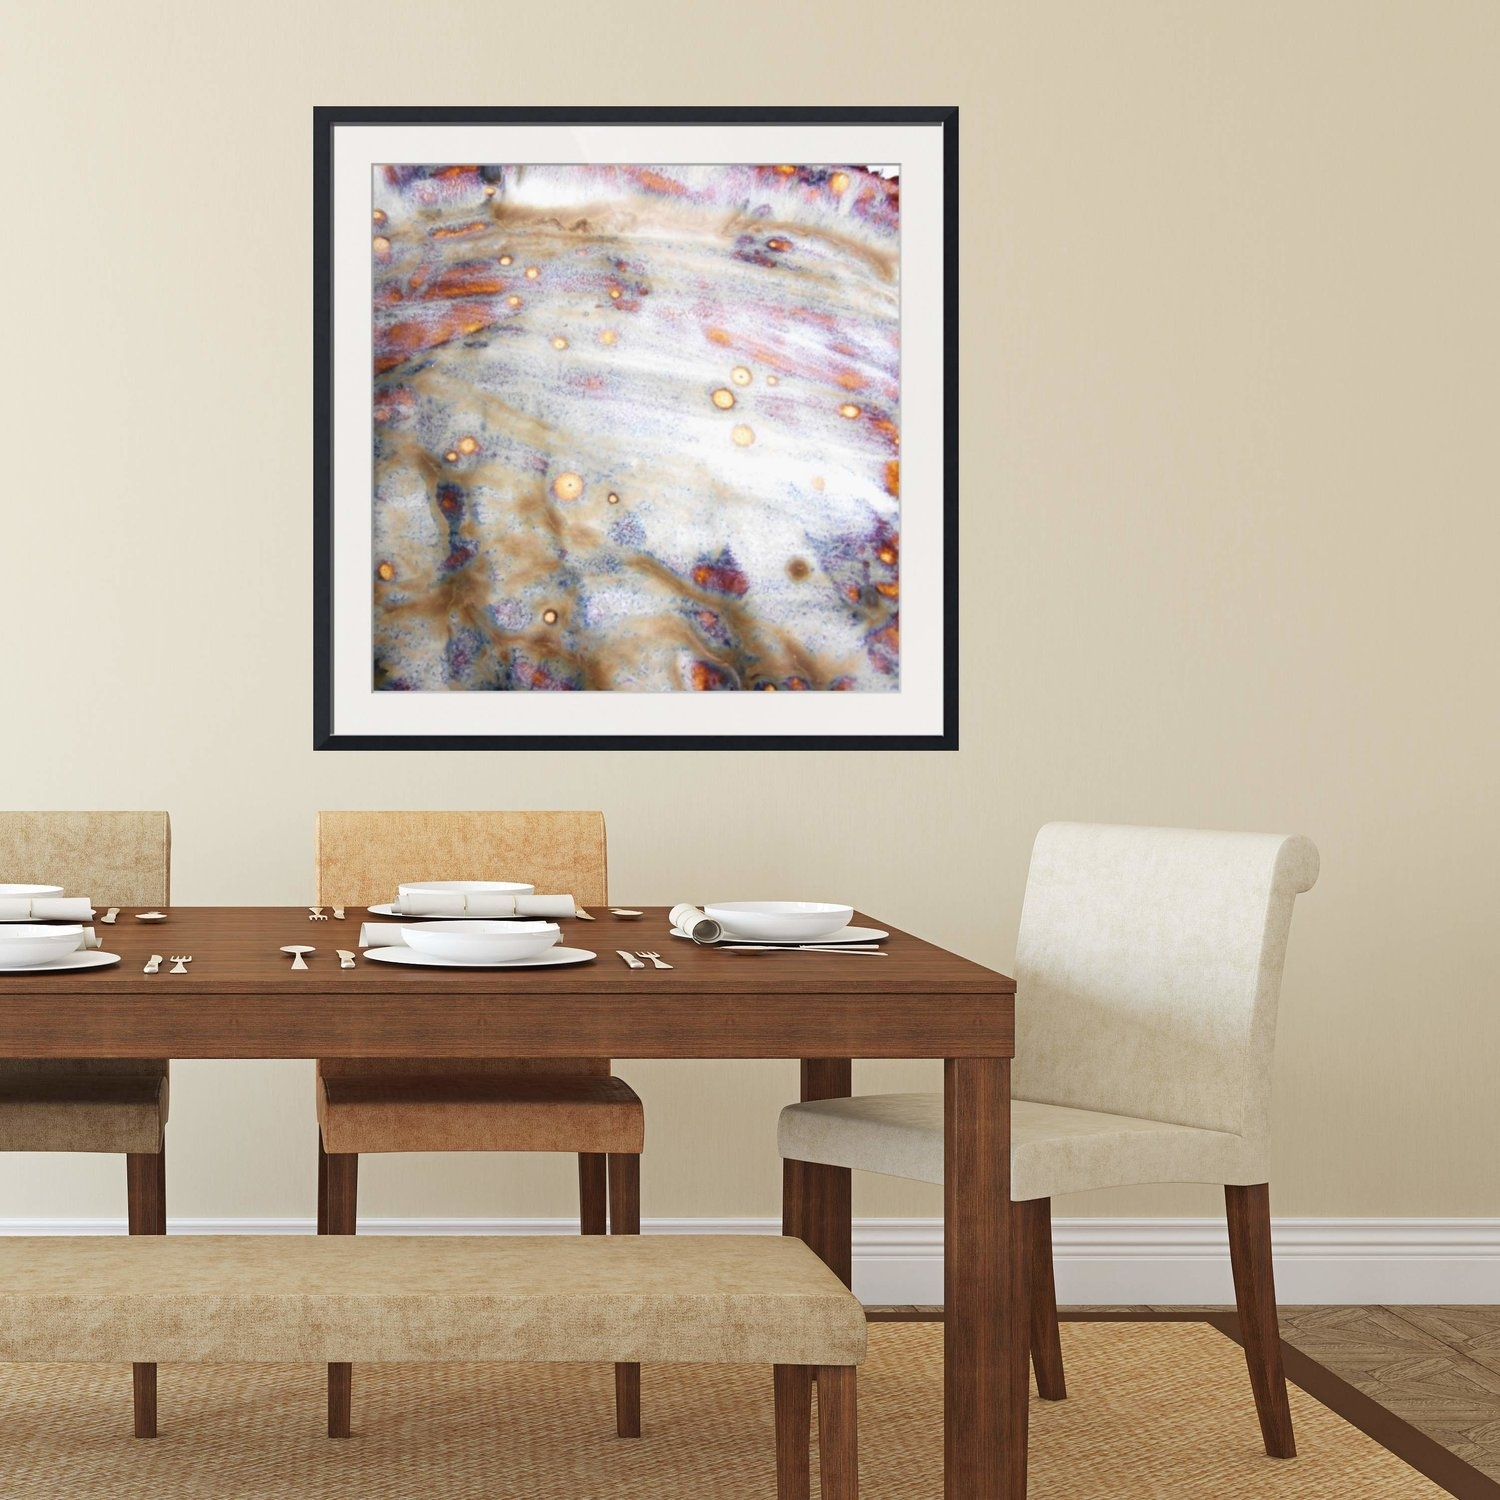 Gallery of Contemporary Framed Art Prints (View 5 of 15 Photos)